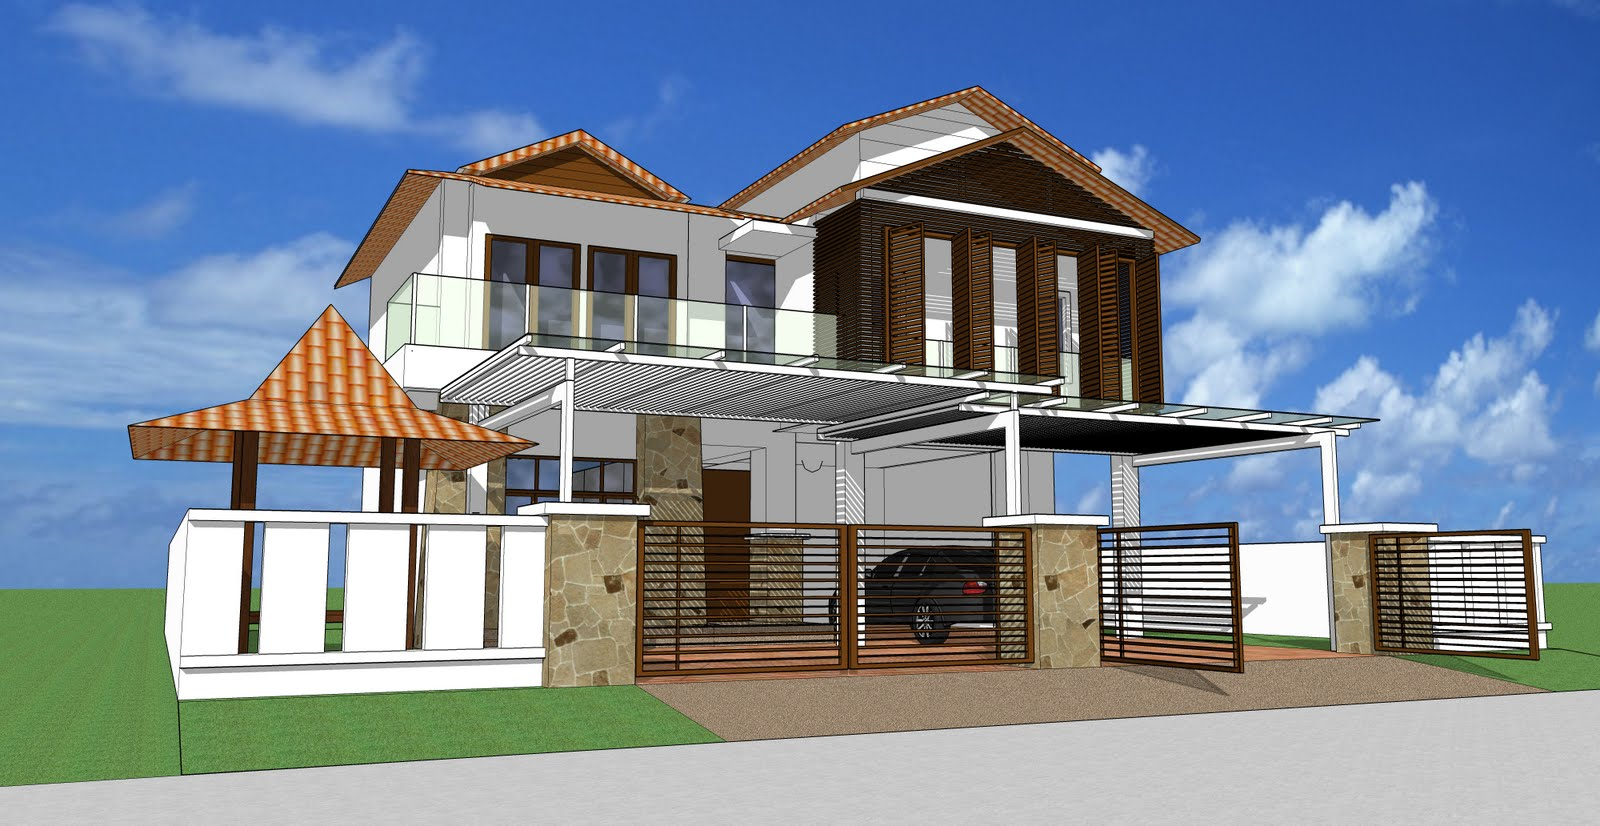 Plan Rumah Semi D http://architrenddesign.blogspot.com/